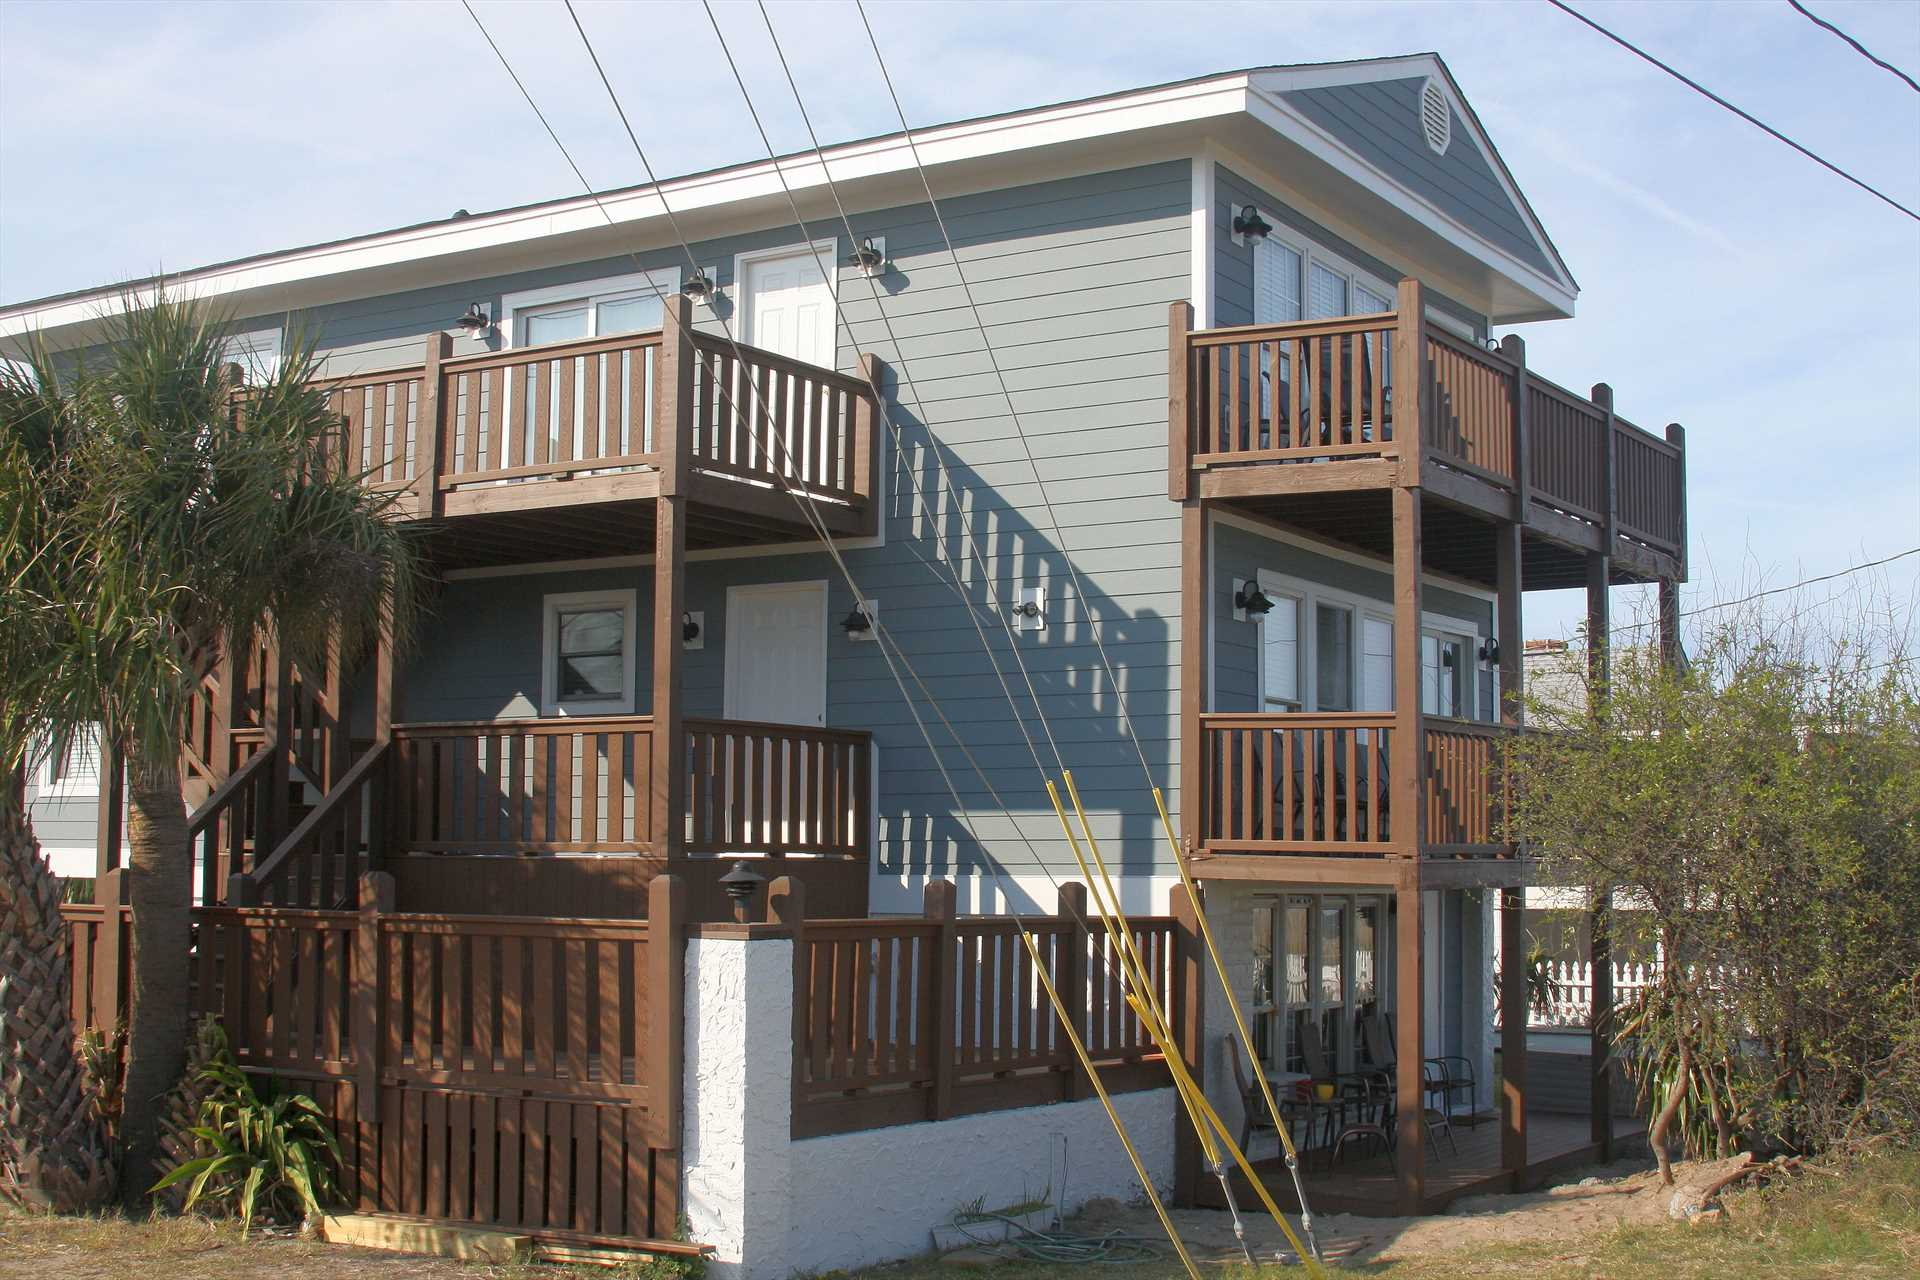 Ocean Front Rental 101 Vacation Apartment For Rent Tybee Island Savannah Beach Georgia